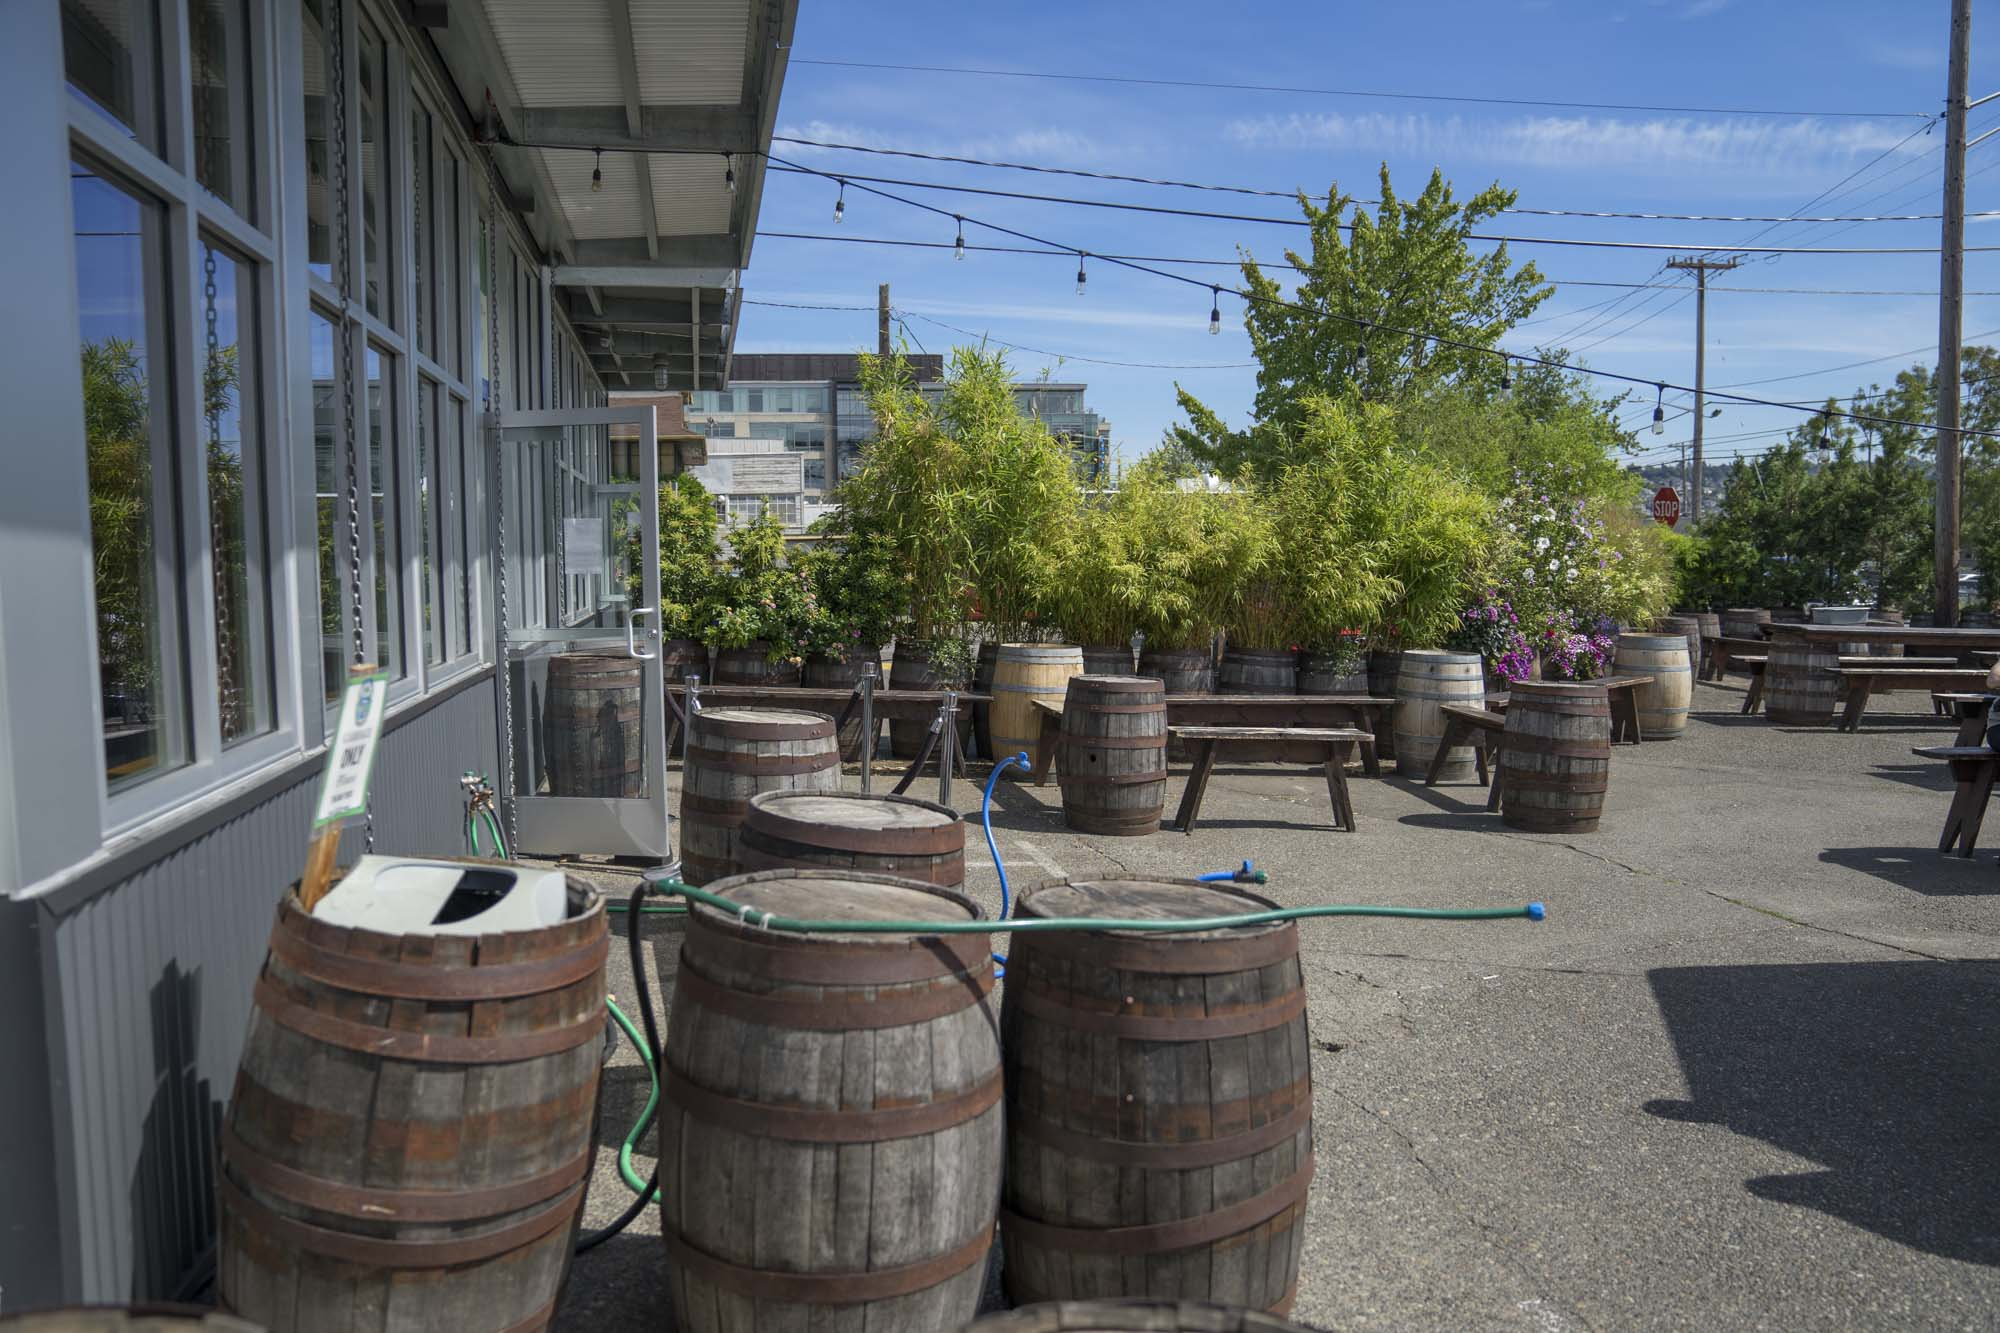 Casks sit outside on the patio at Fremont Brewing in Seattle.